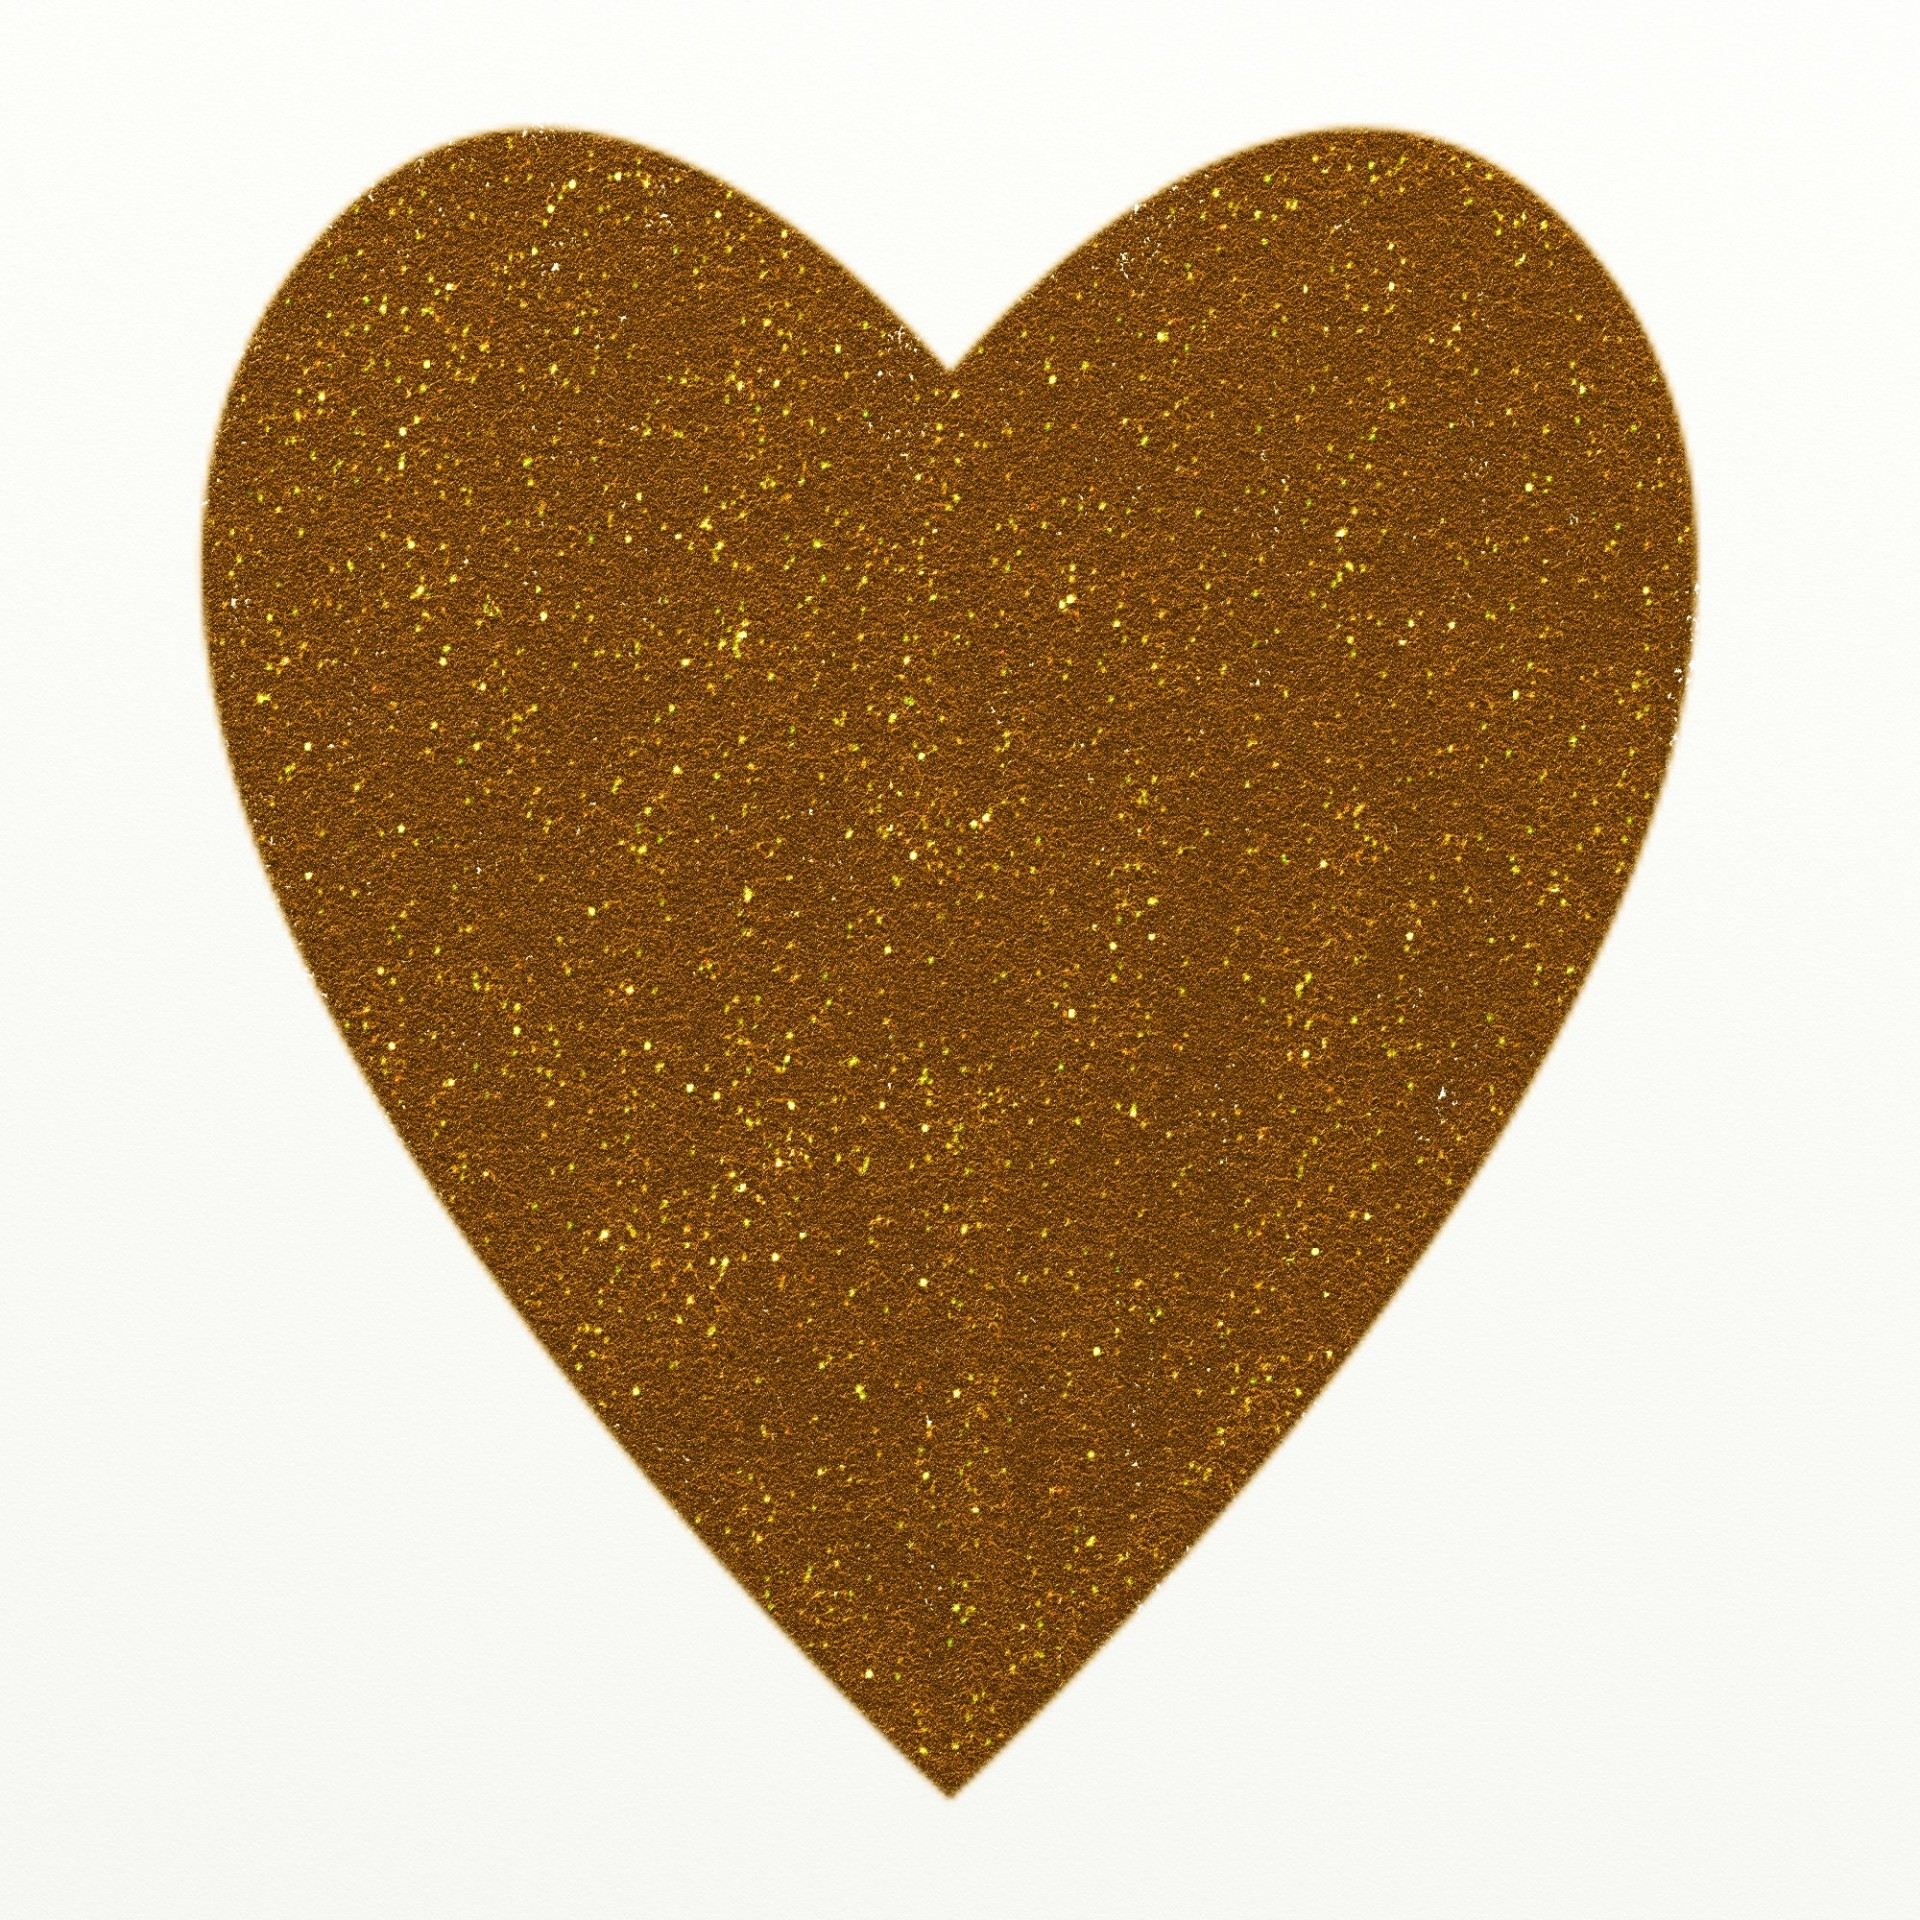 Gold Glitter Heart Clipart Free Stock Photo.